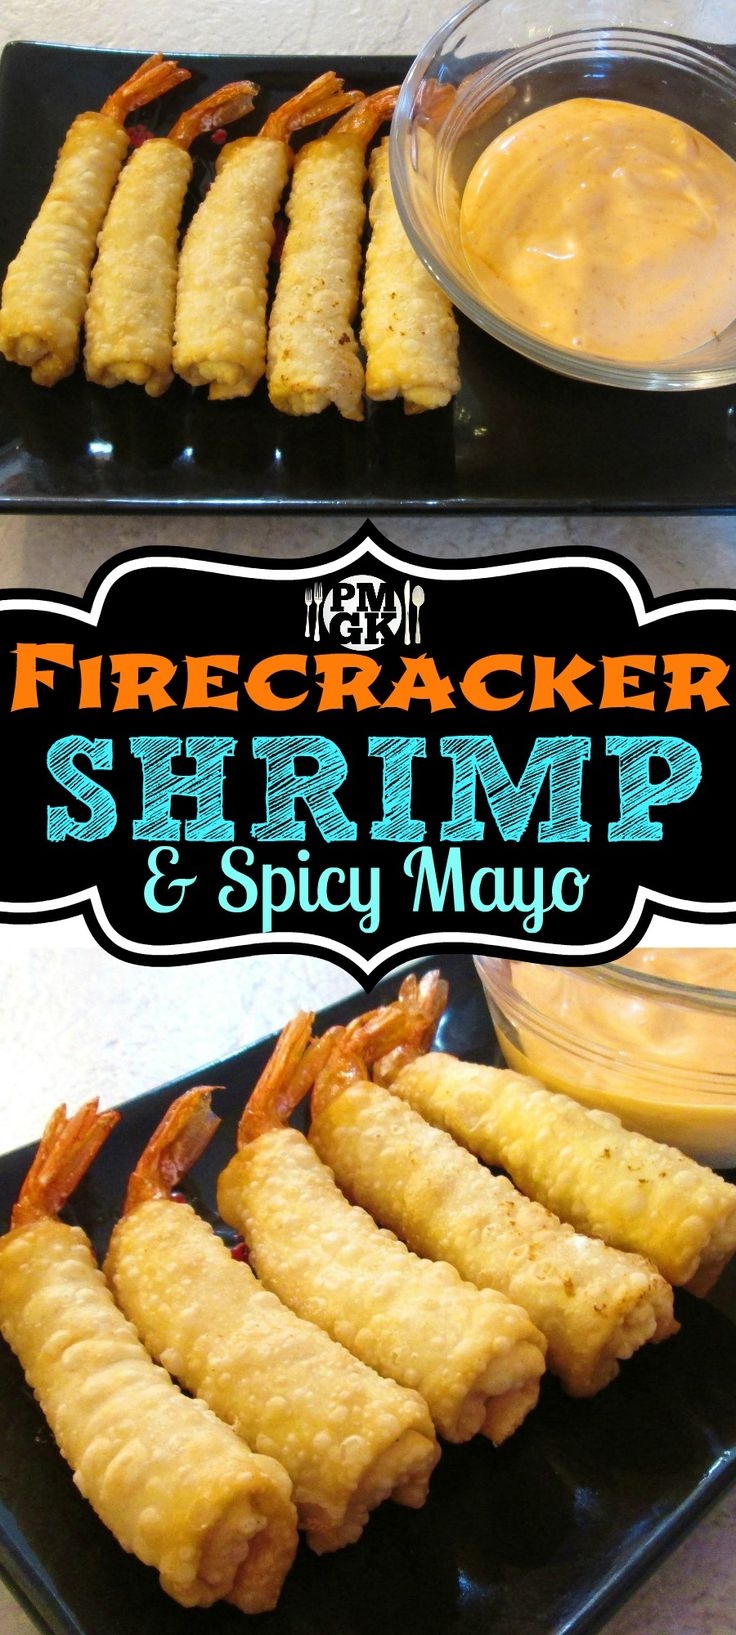 36 best pmgk asian food recipes images on pinterest asian food firecracker shrimp with spicy mayo forumfinder Image collections